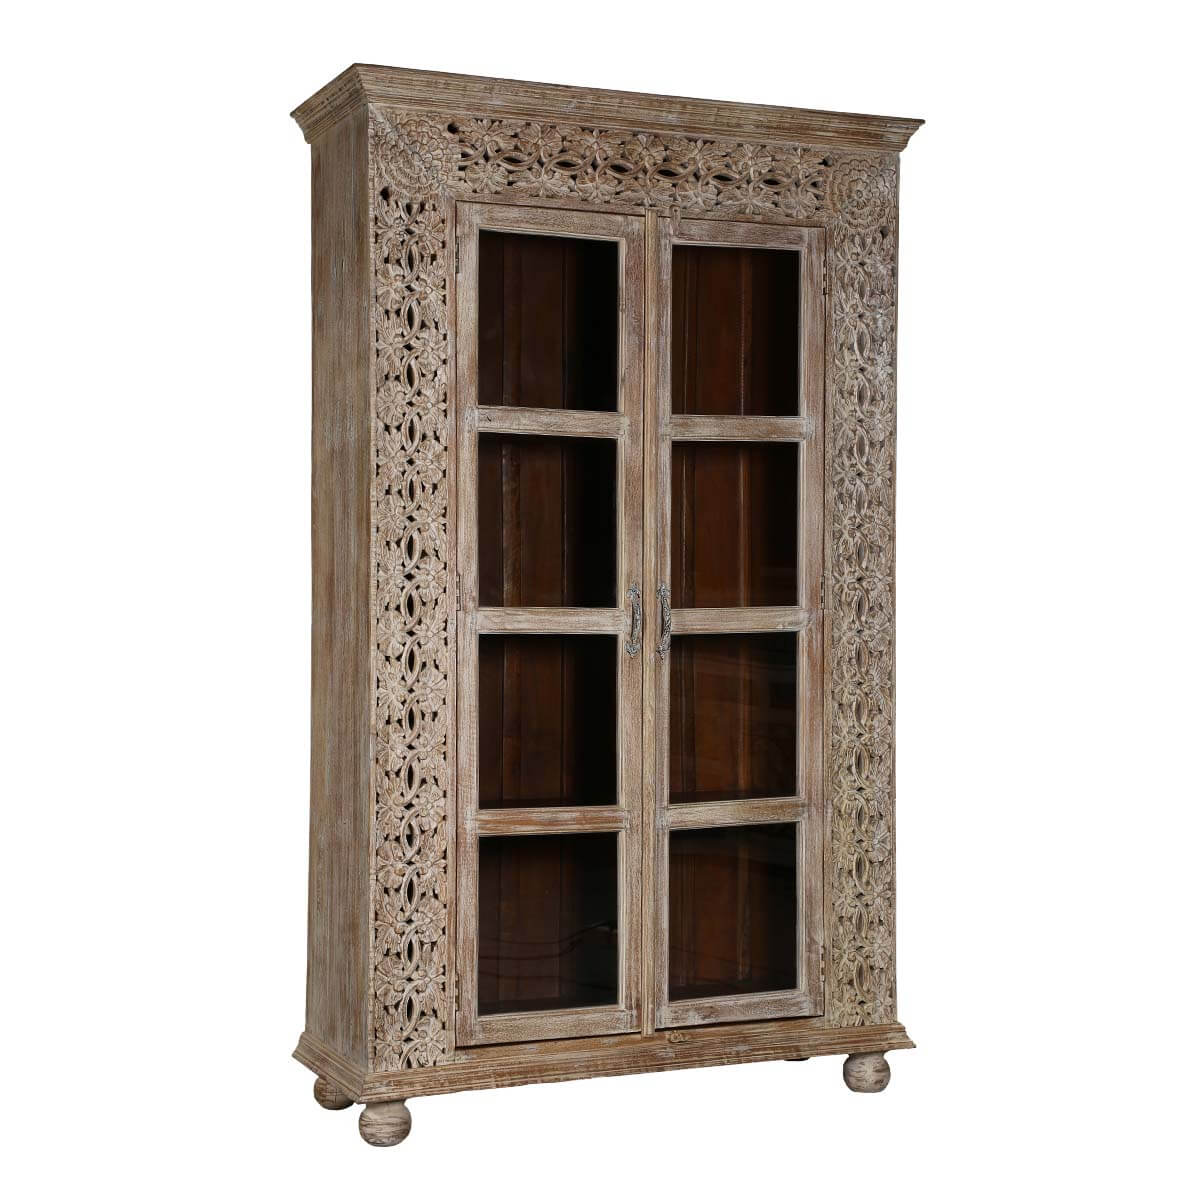 Dover handcrafted rustic solid wood glass door tall armoire for Solid wood door with glass